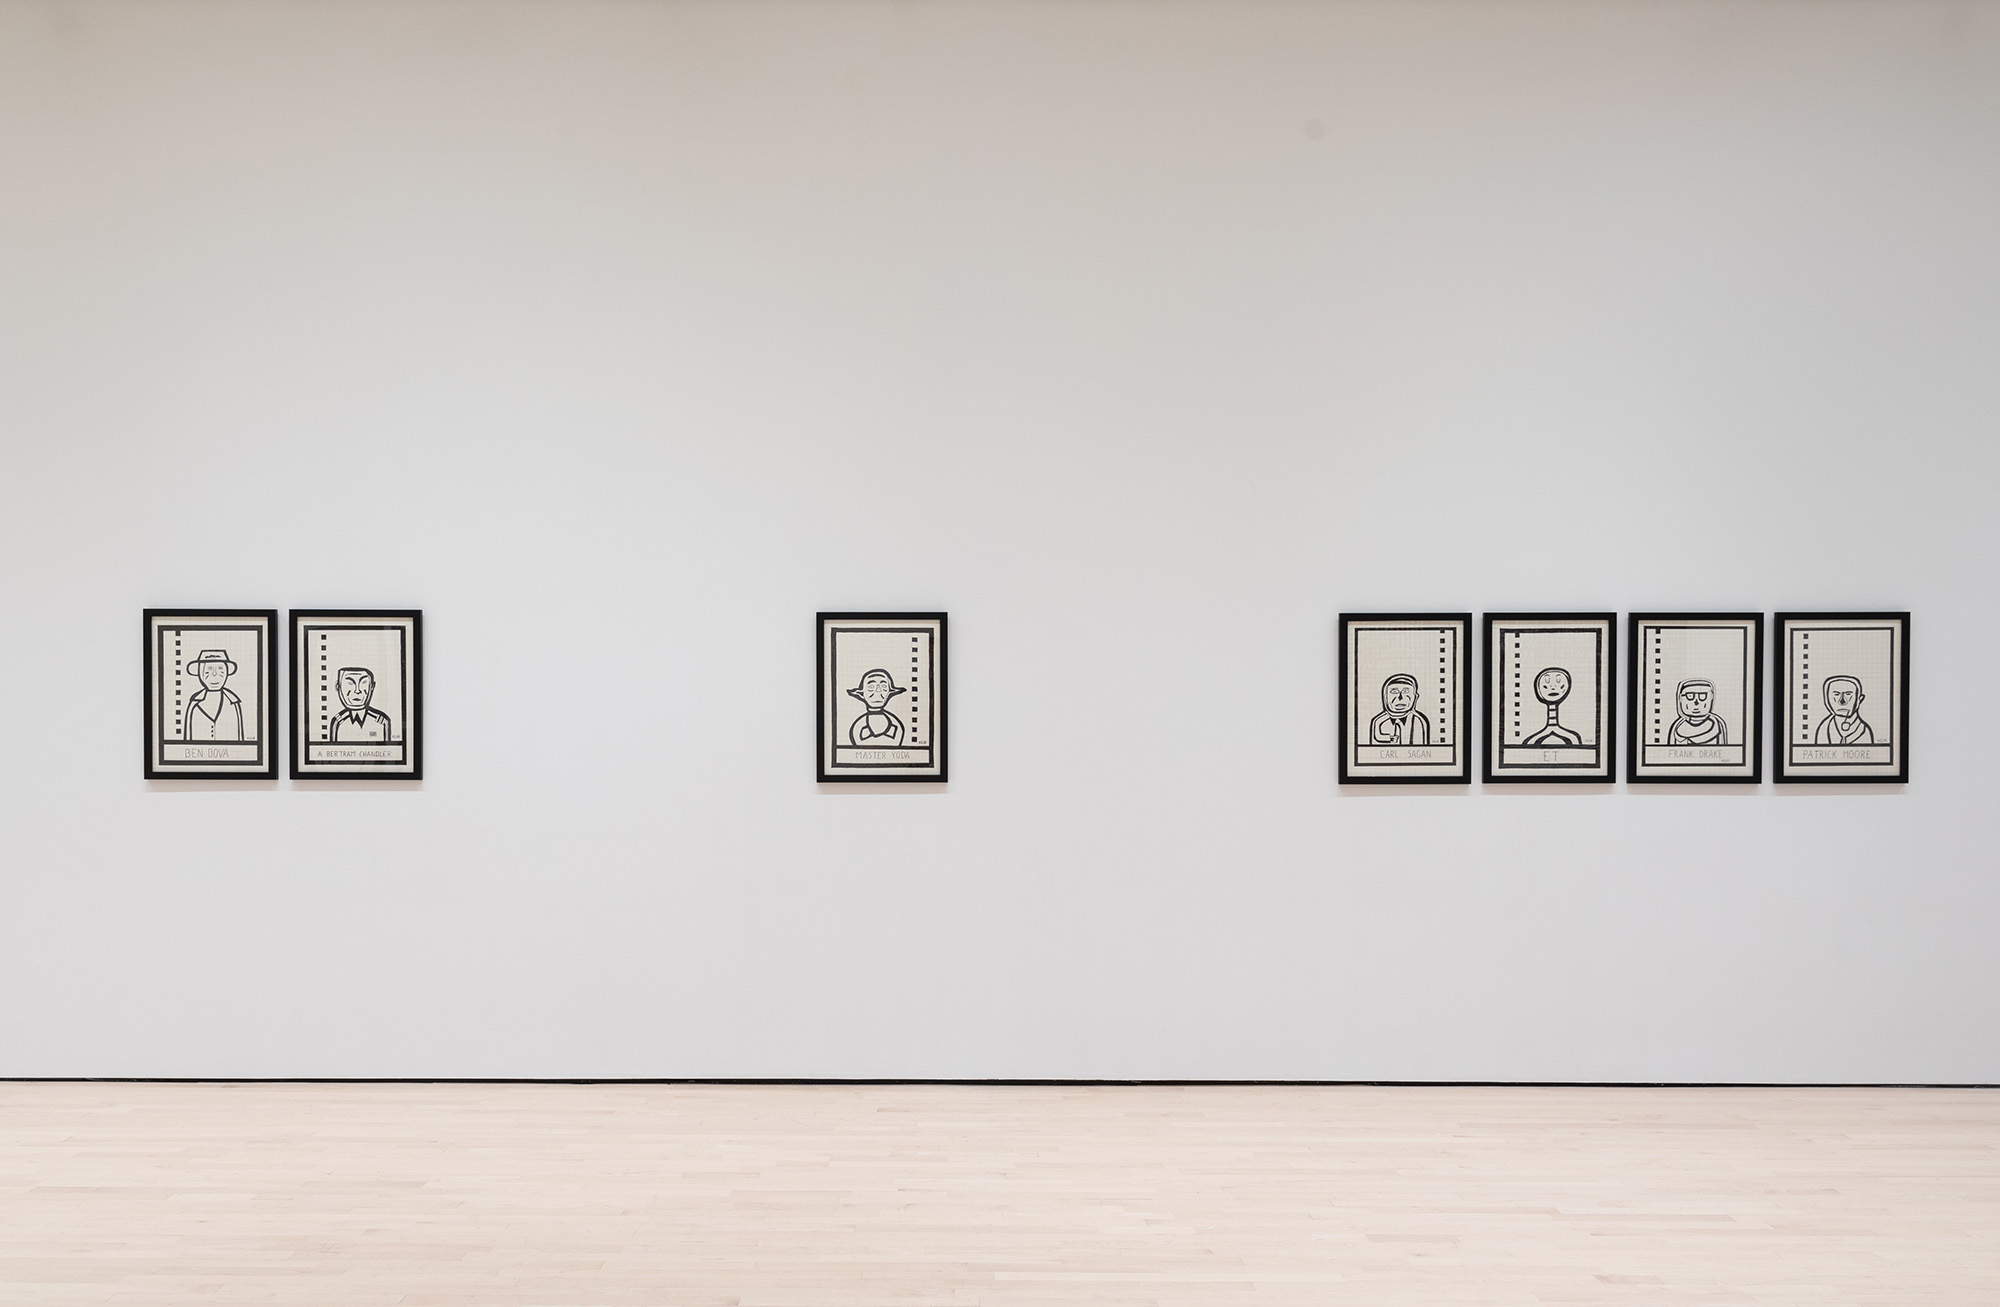 <i>Field Station: Ken Grimes</i>, installation view at the Eli and Edythe Broad Art Museum at Michigan State University, 2018. Photo: Eat Pomegranate Photography